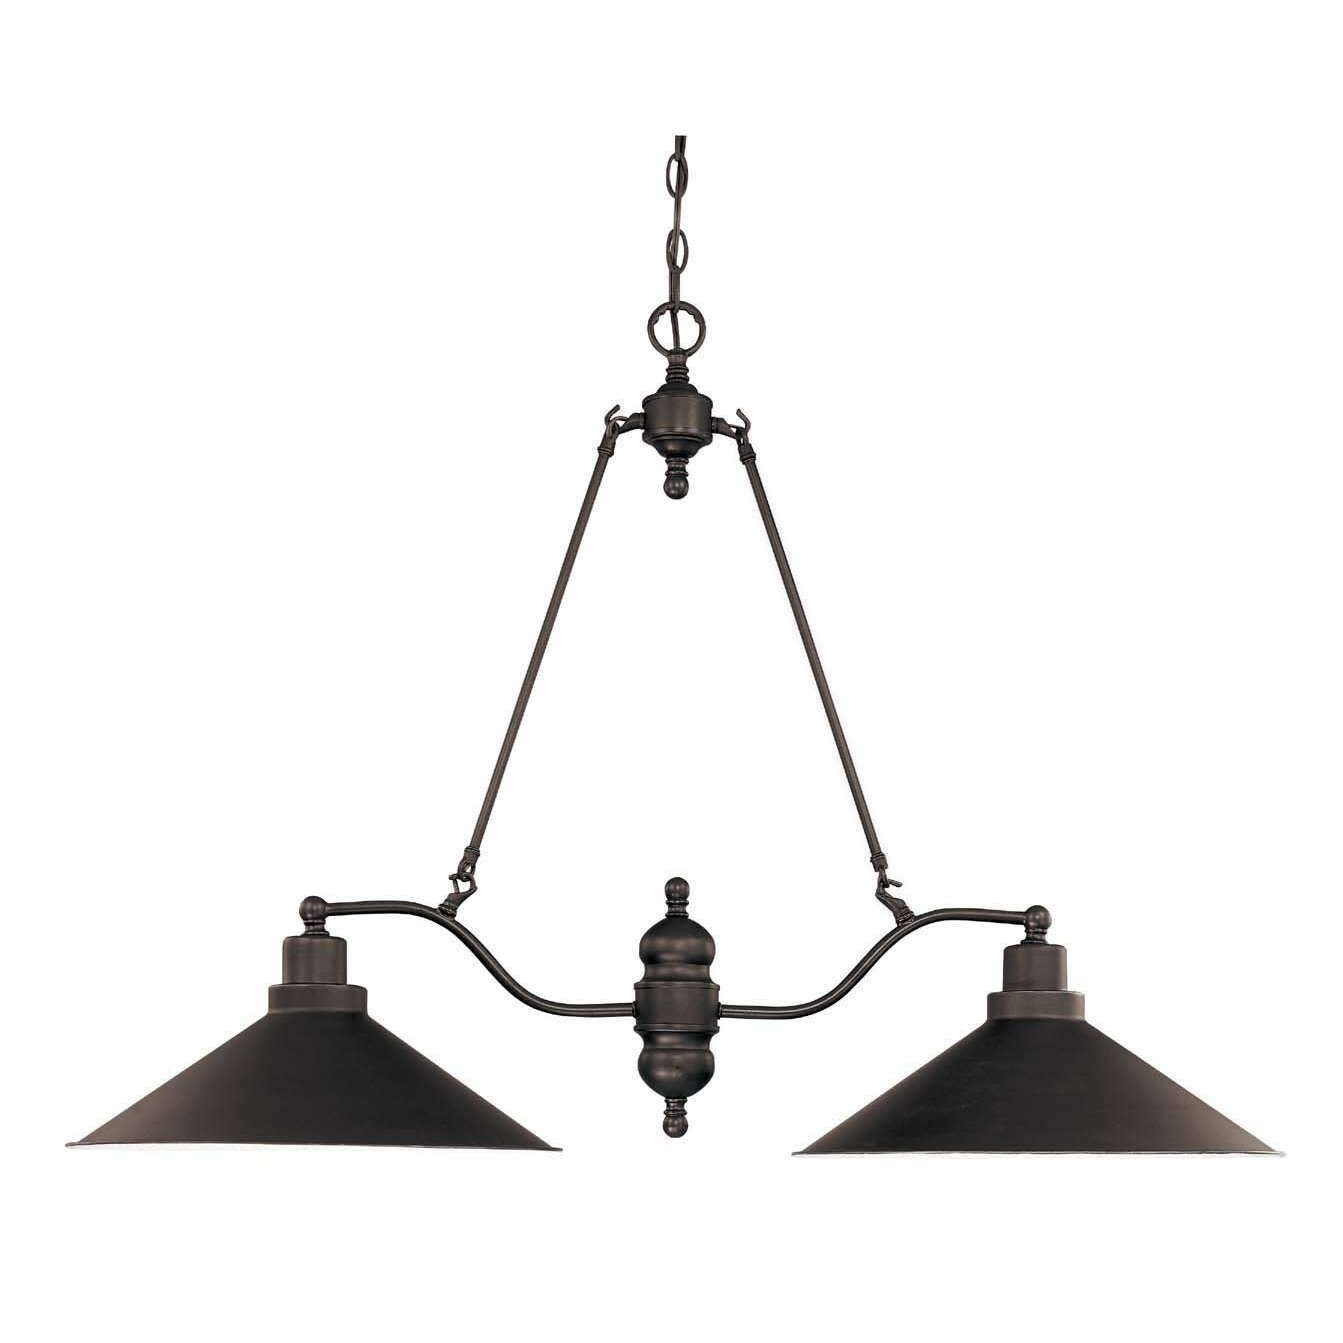 Kitchen Island Pendant Lighting: Trent Austin Design Schaff 2 Light Kitchen Island Pendant